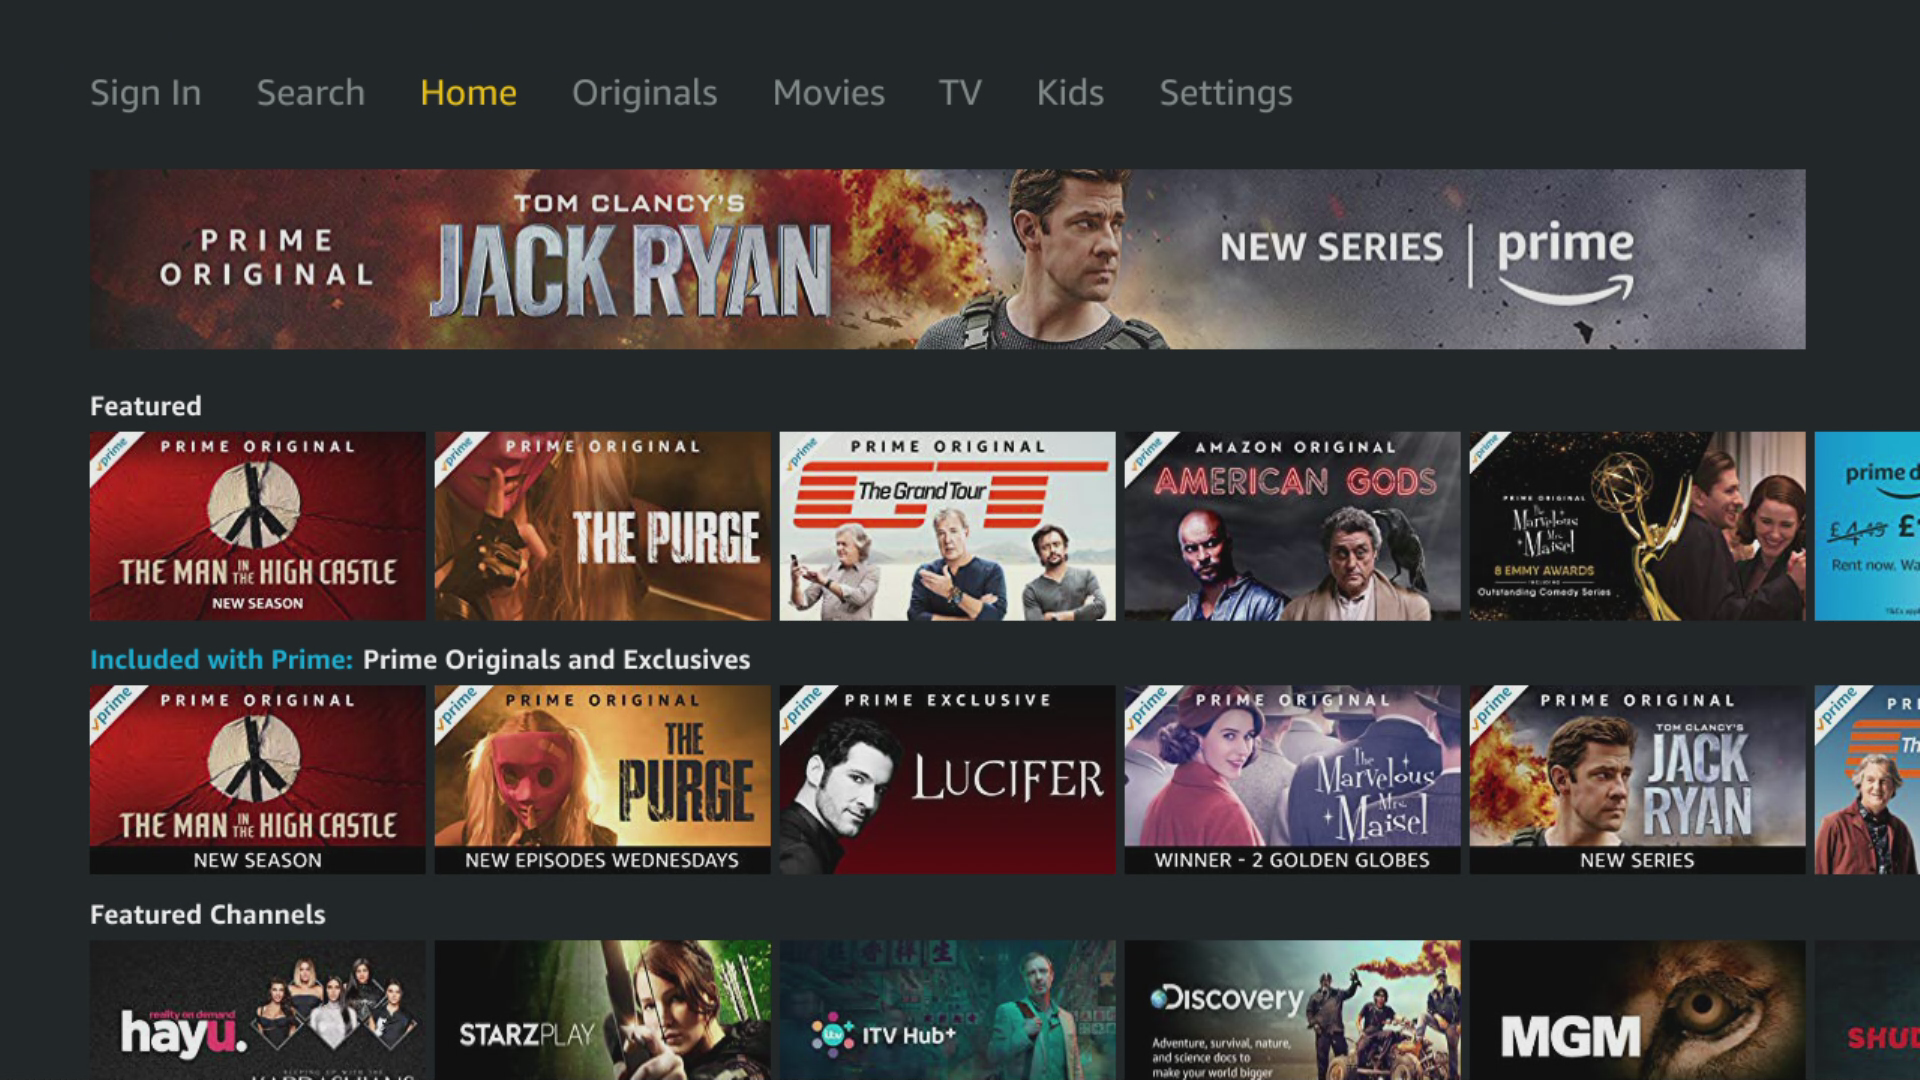 Amazon Prime Video app home on BT TV